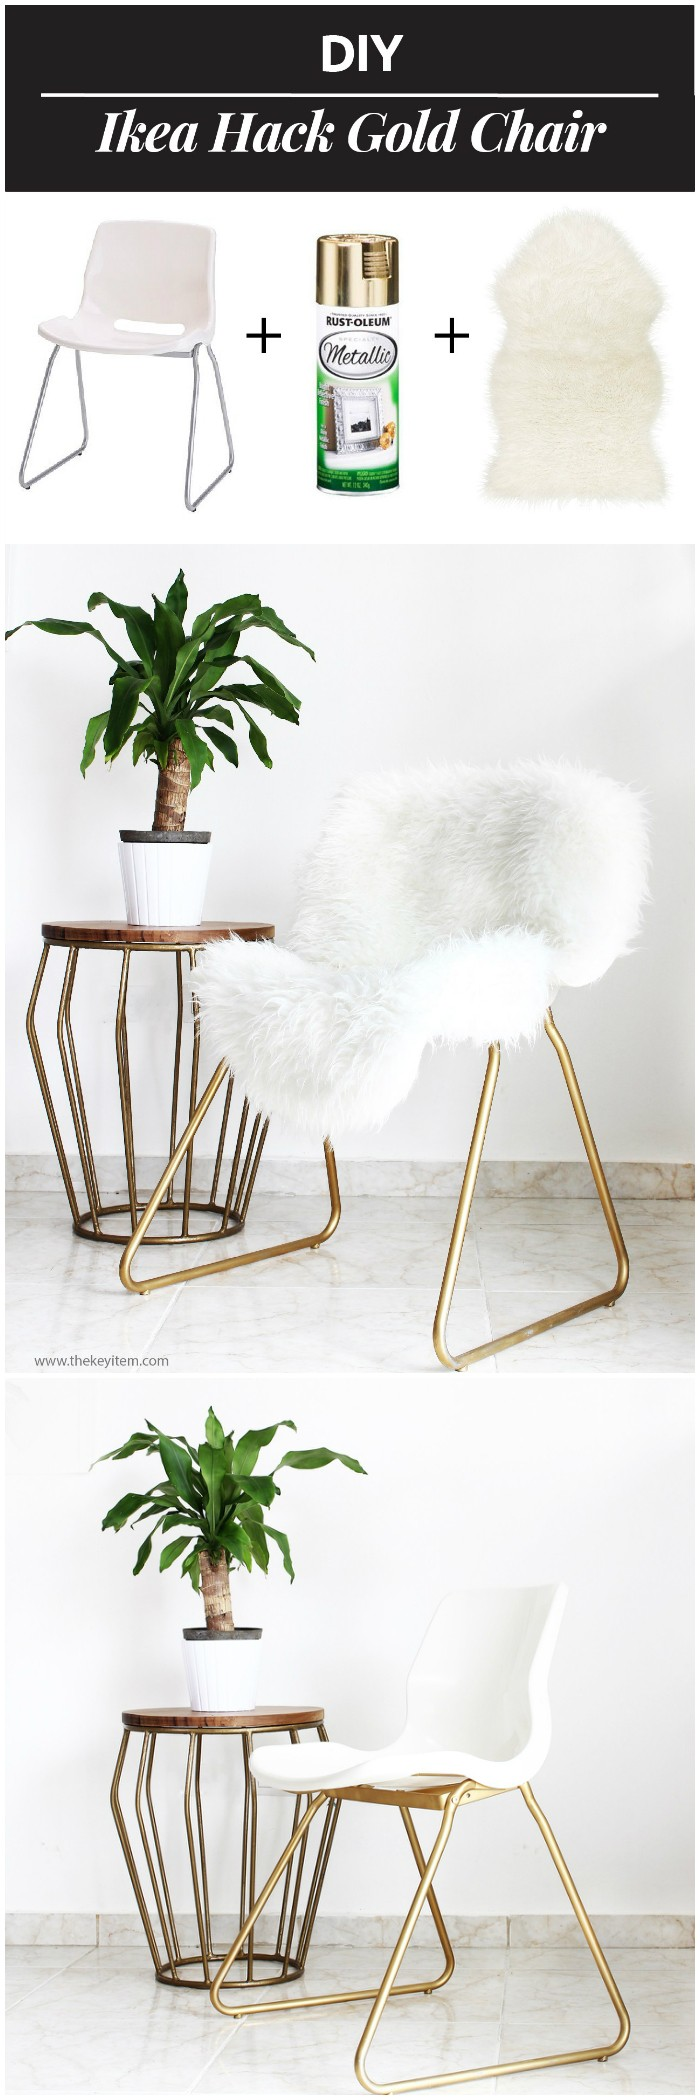 DIY IKEA Hack Gold Chair IKEA Hacks For Your Home Decor